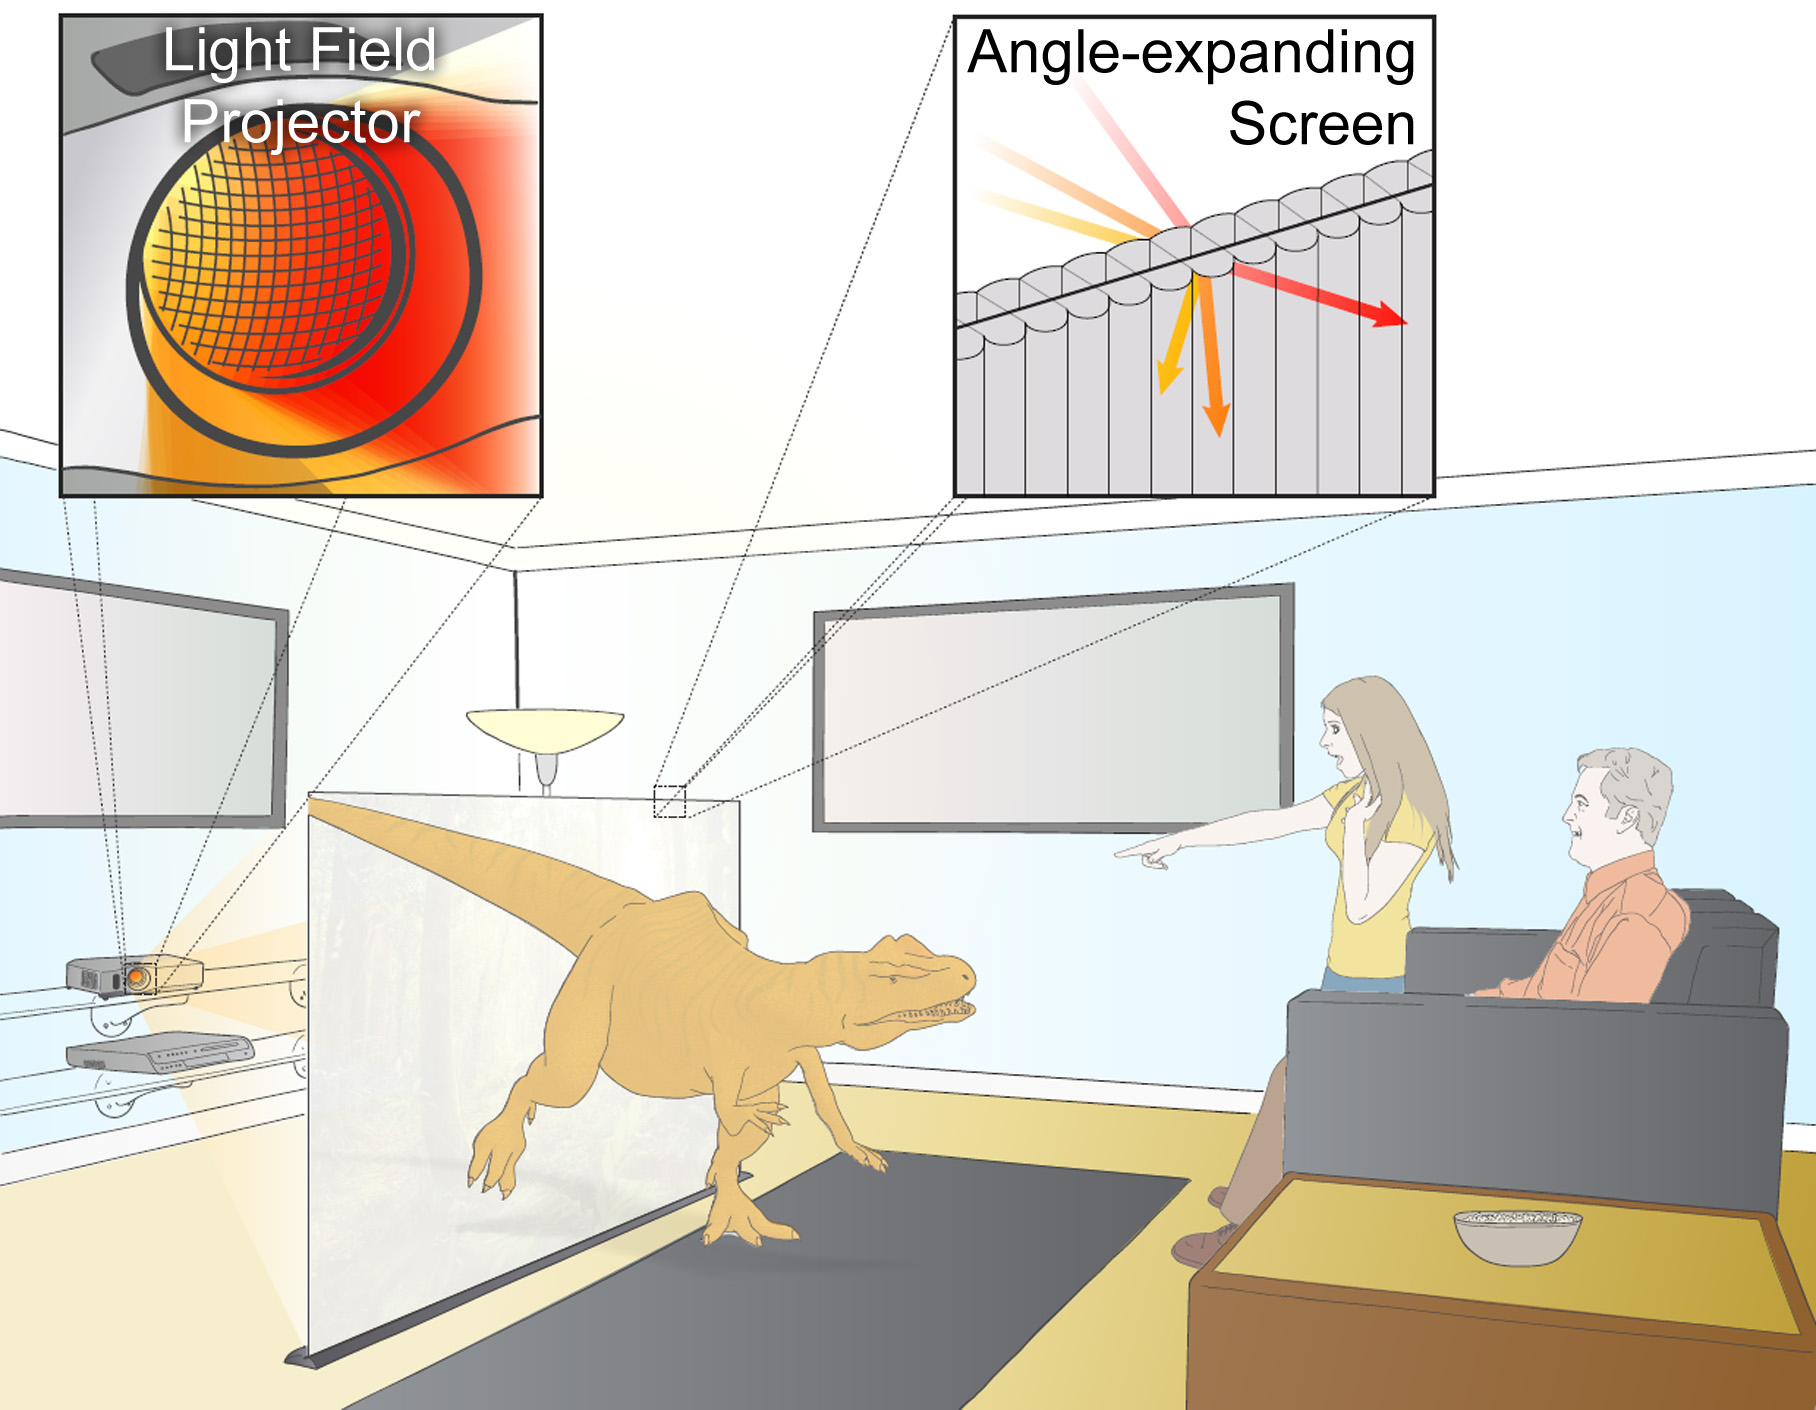 Illustration of concept. A light field projector, build using readily-available optics and electronics, emits a 4D light field onto a screen that expands the field of view so that observers on the other side of the screen can enjoy glasses-free 3D entertainment. No mechanically moving parts are used in either the projector or the screen. Additionally, the screen is completely passive, potentially allowing for the system to be scaled to significantly larger dimensions. (picture: MIT Media Lab, Camera Culture Group)